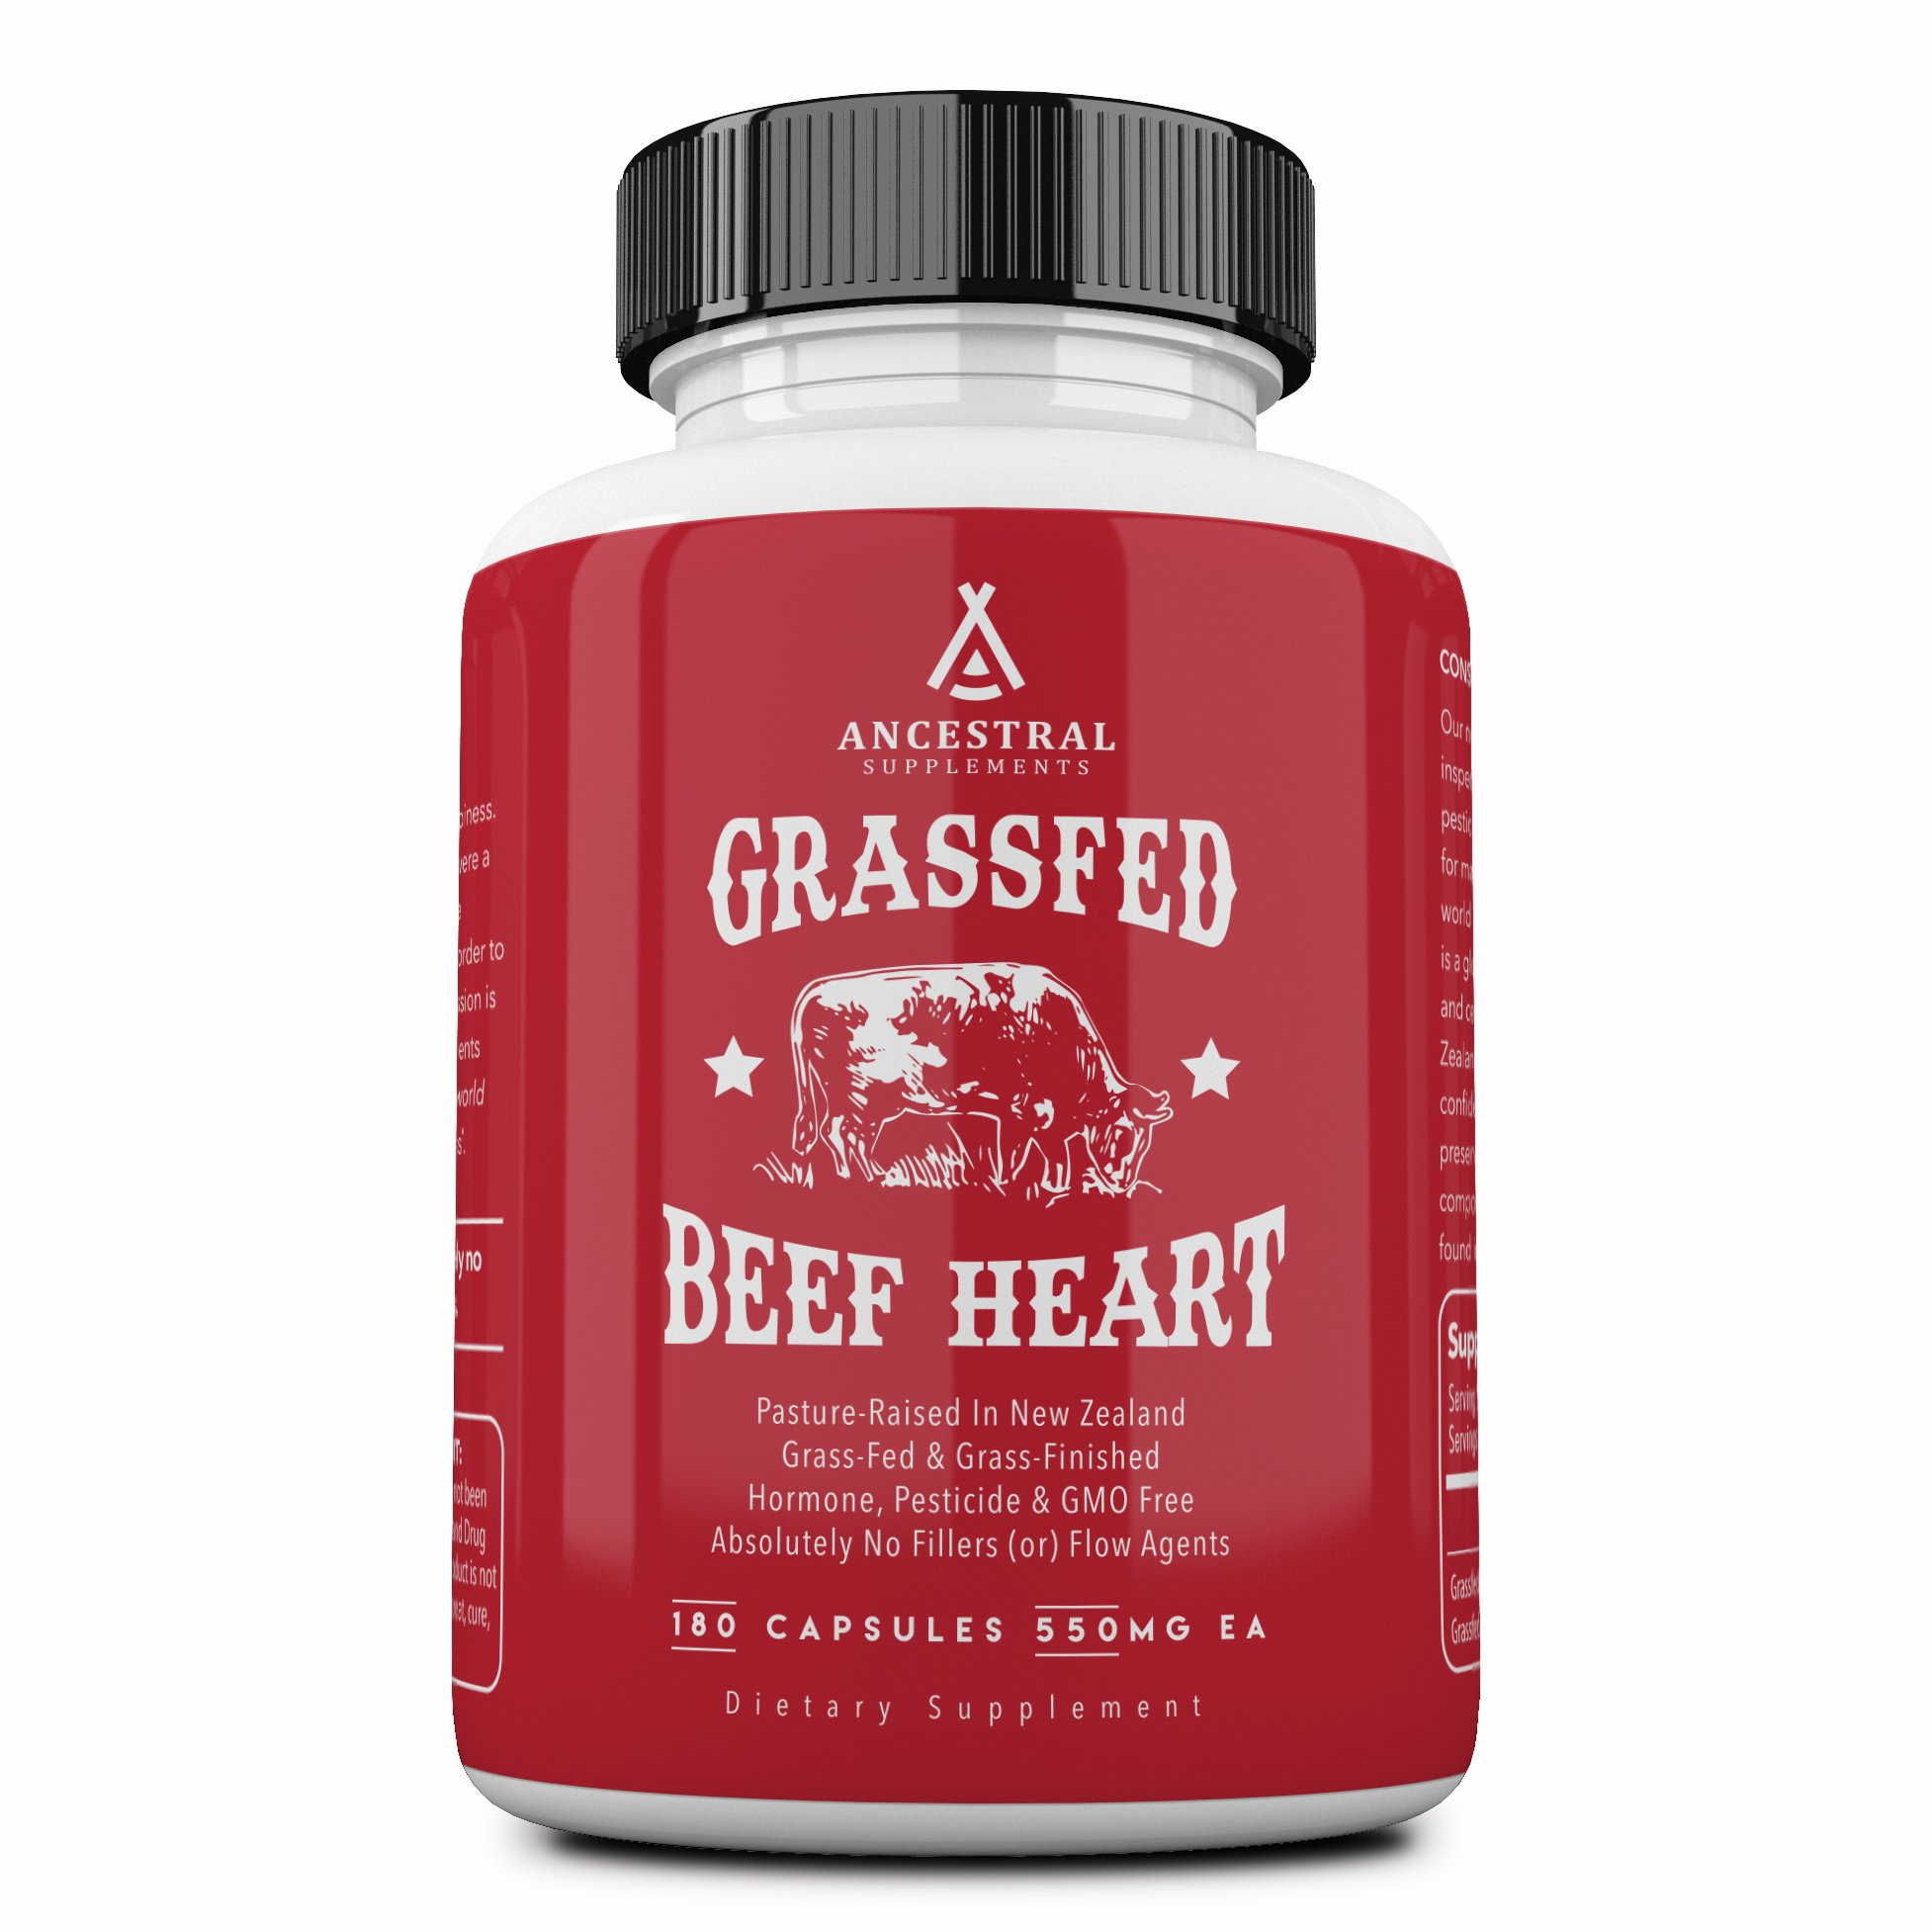 Ancestral Supplements Grass Fed Beef Heart (Desiccated) - Natural CoQ10, Supports Heart, Mitochondrial and Blood Pressure Health (180 Capsules) by Ancestral Supplements